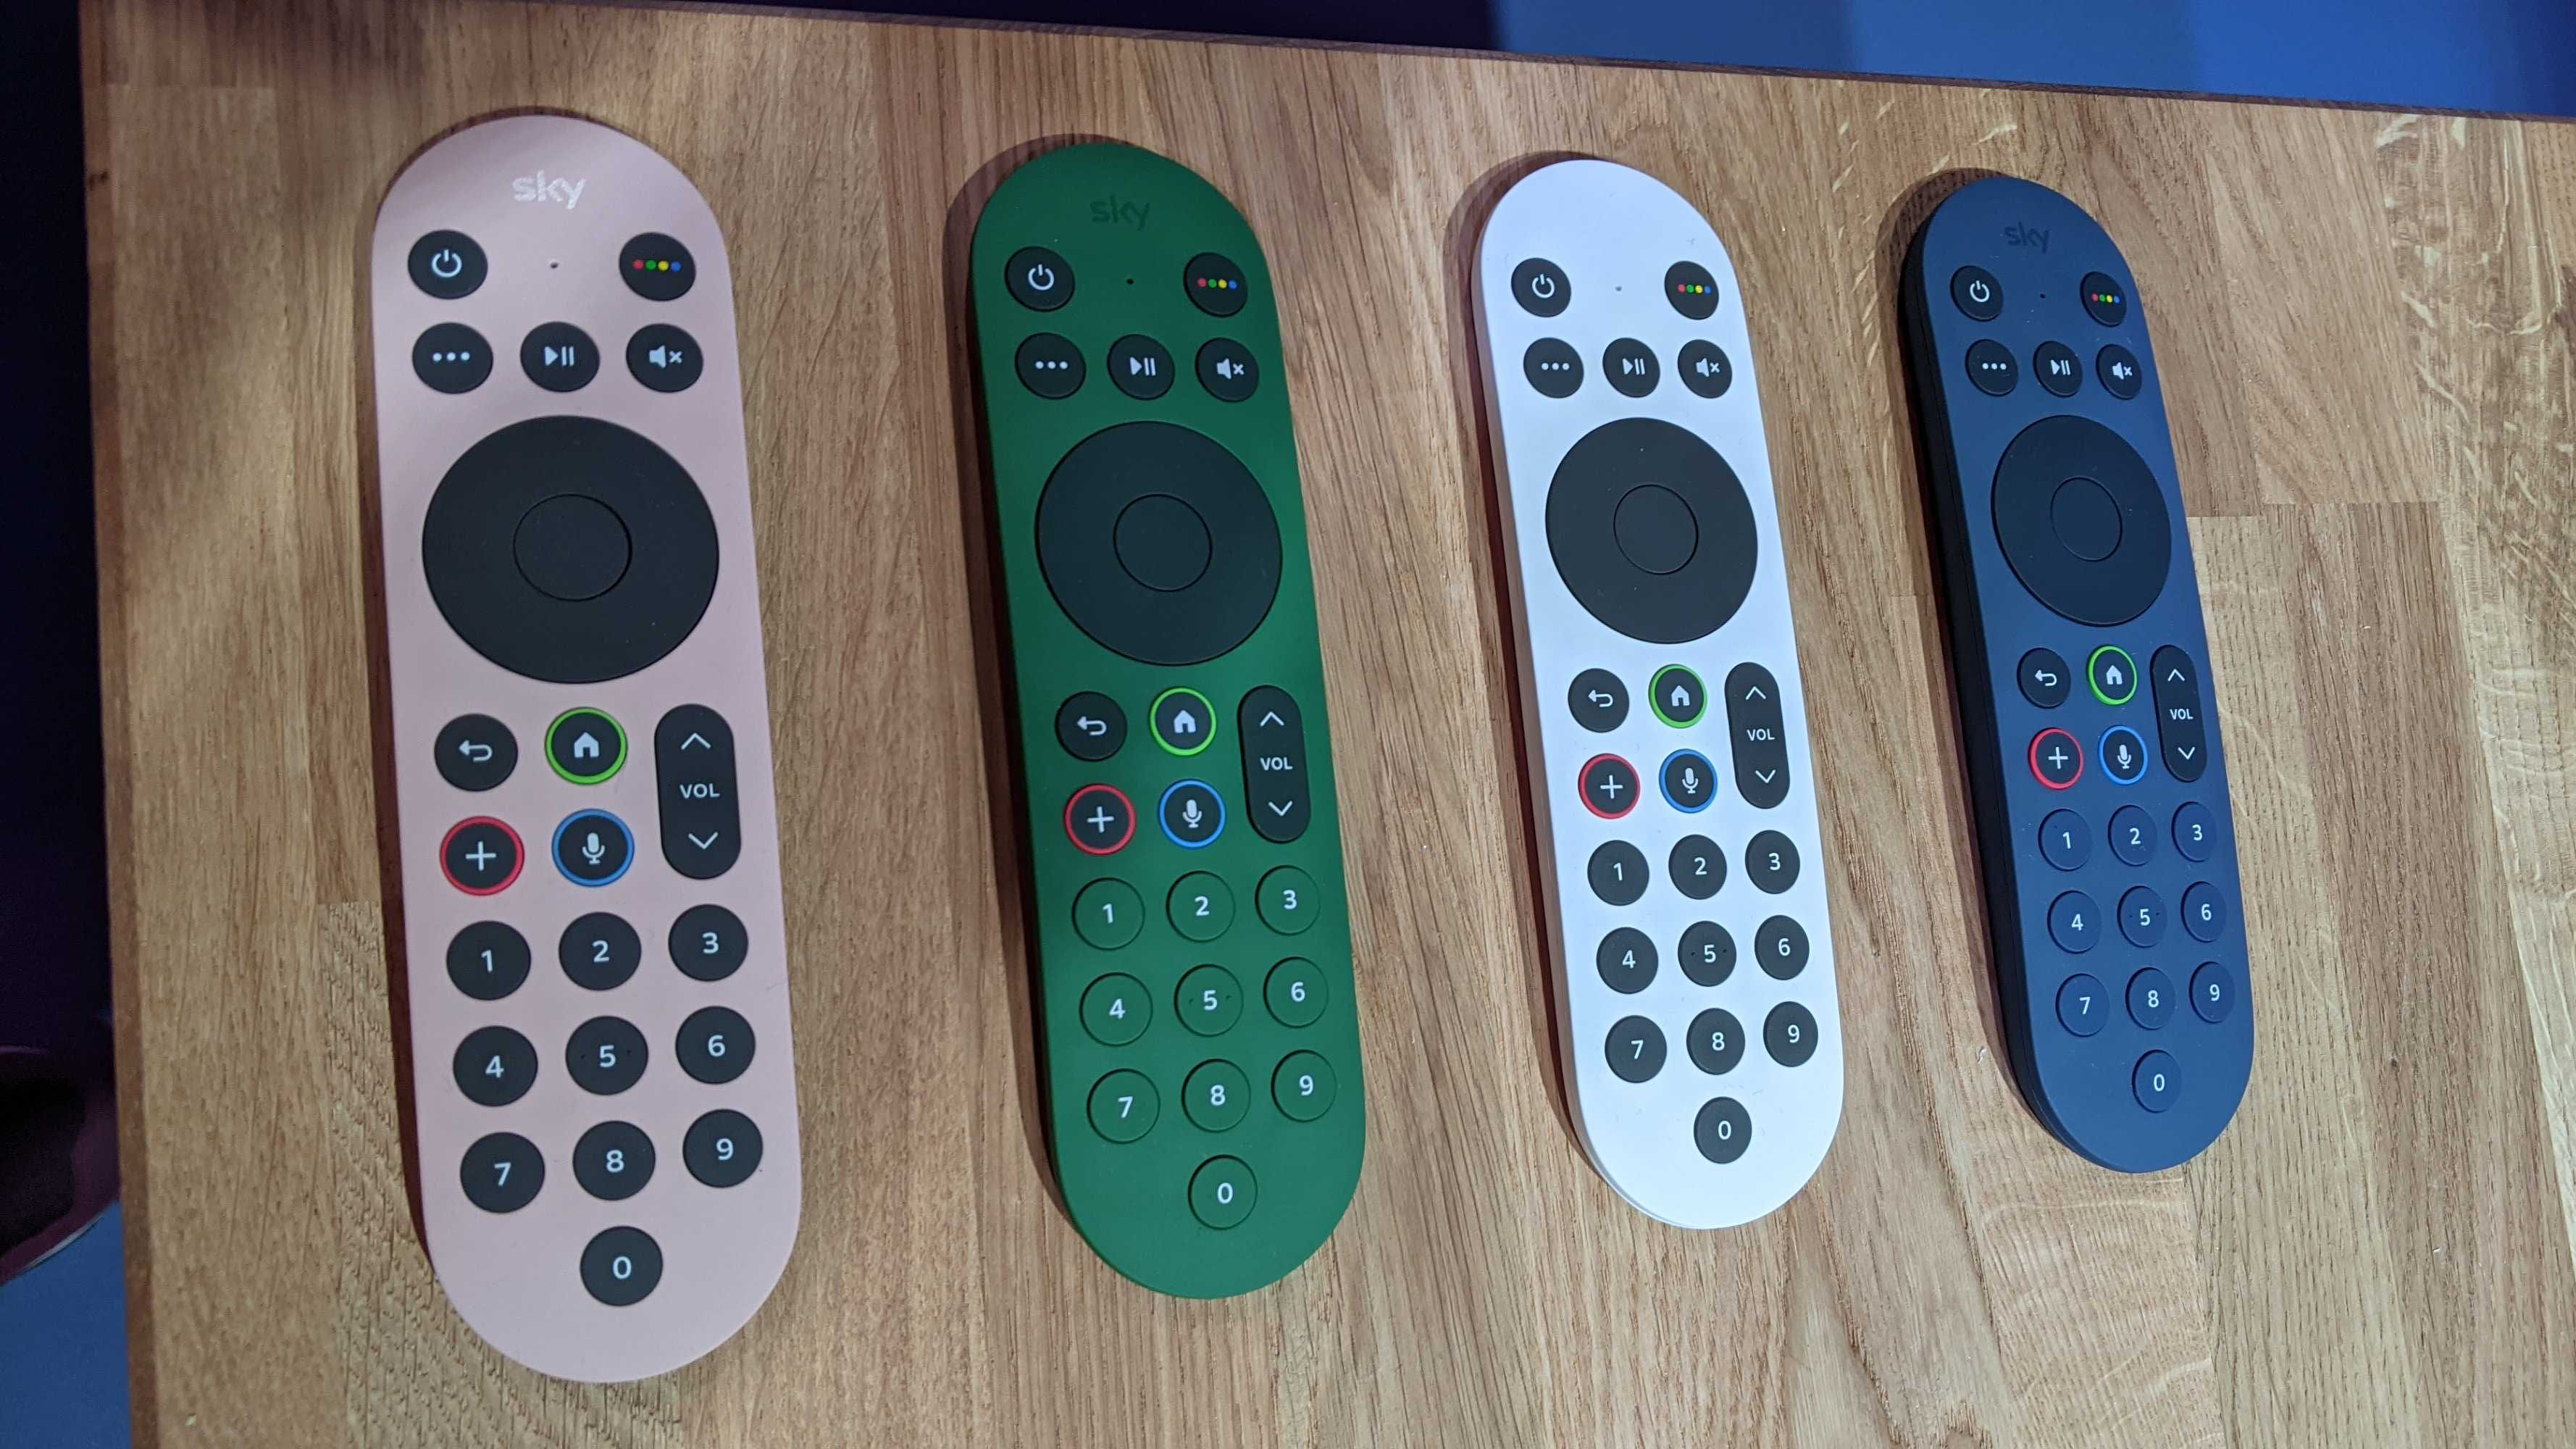 sky glass remotes along table in four different colors